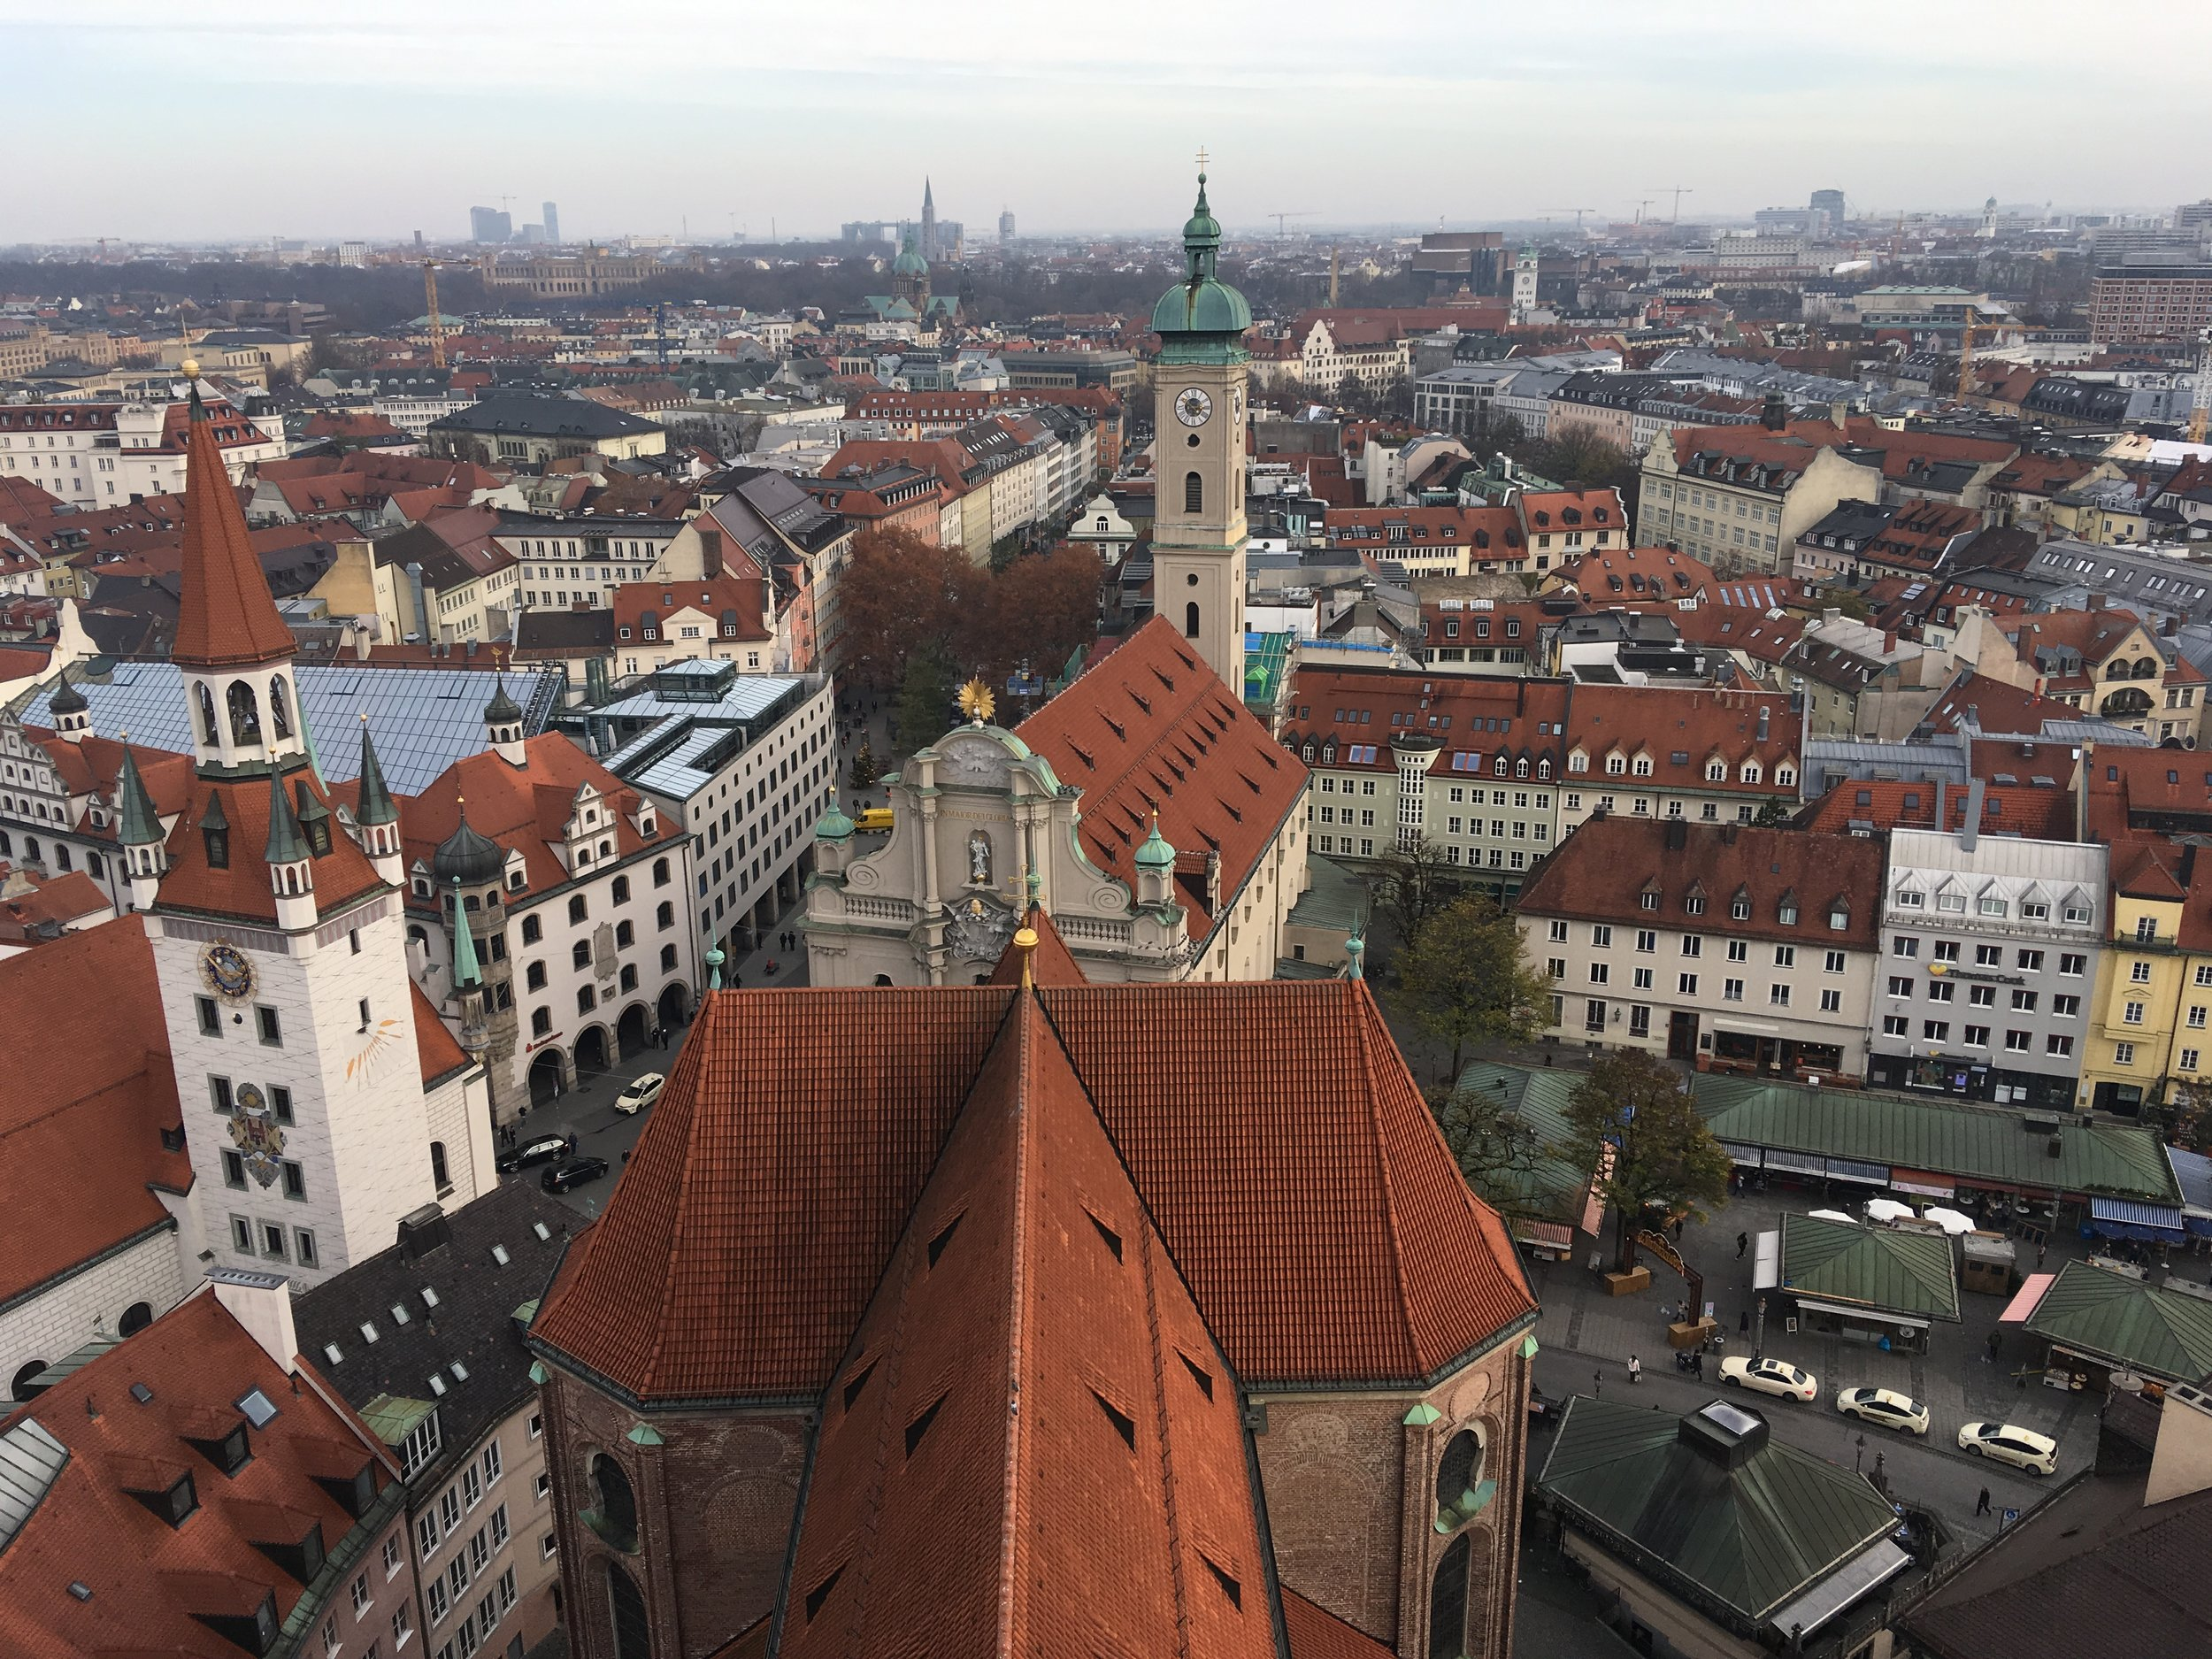 A view of Munich from the top of St. Peter's church